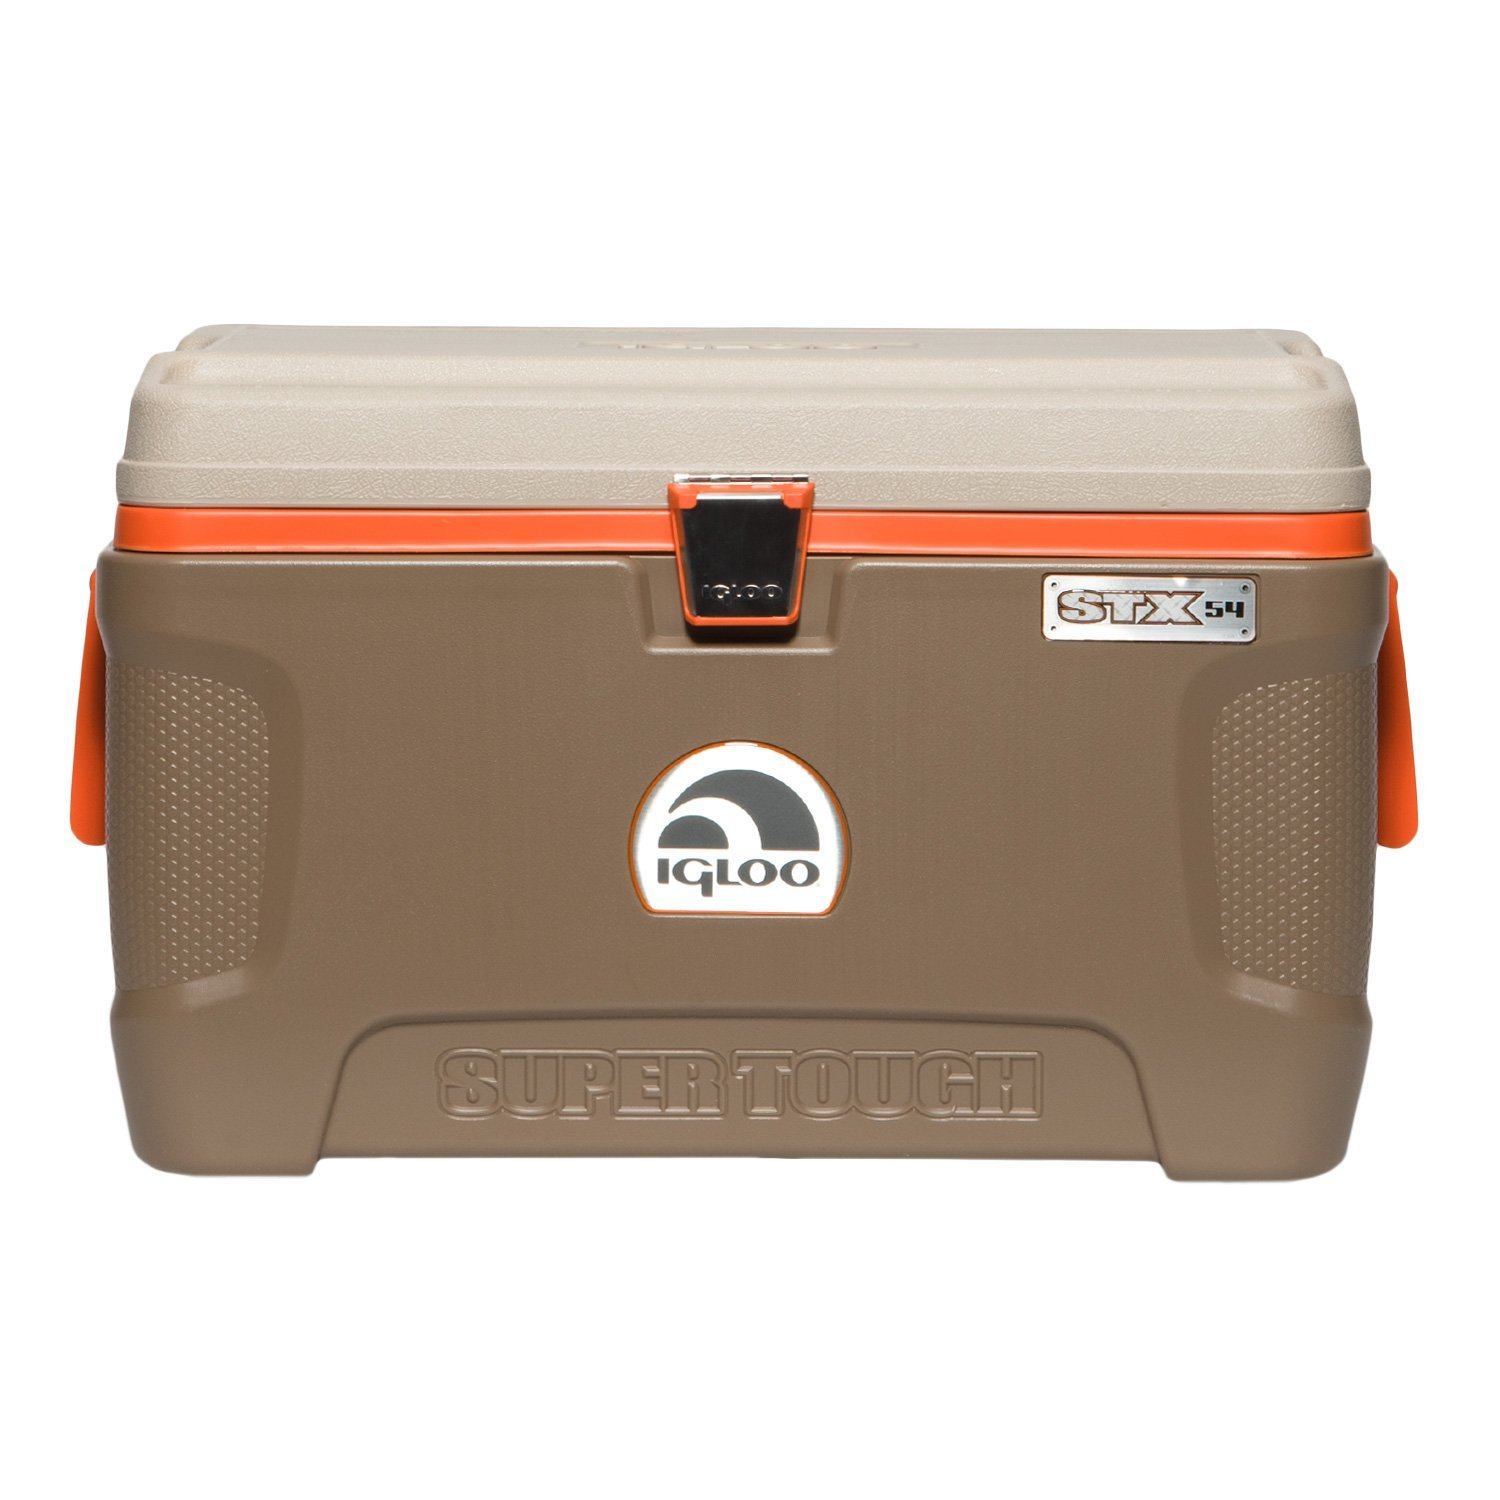 Igloo Super Tough STX Sportsman Coolers